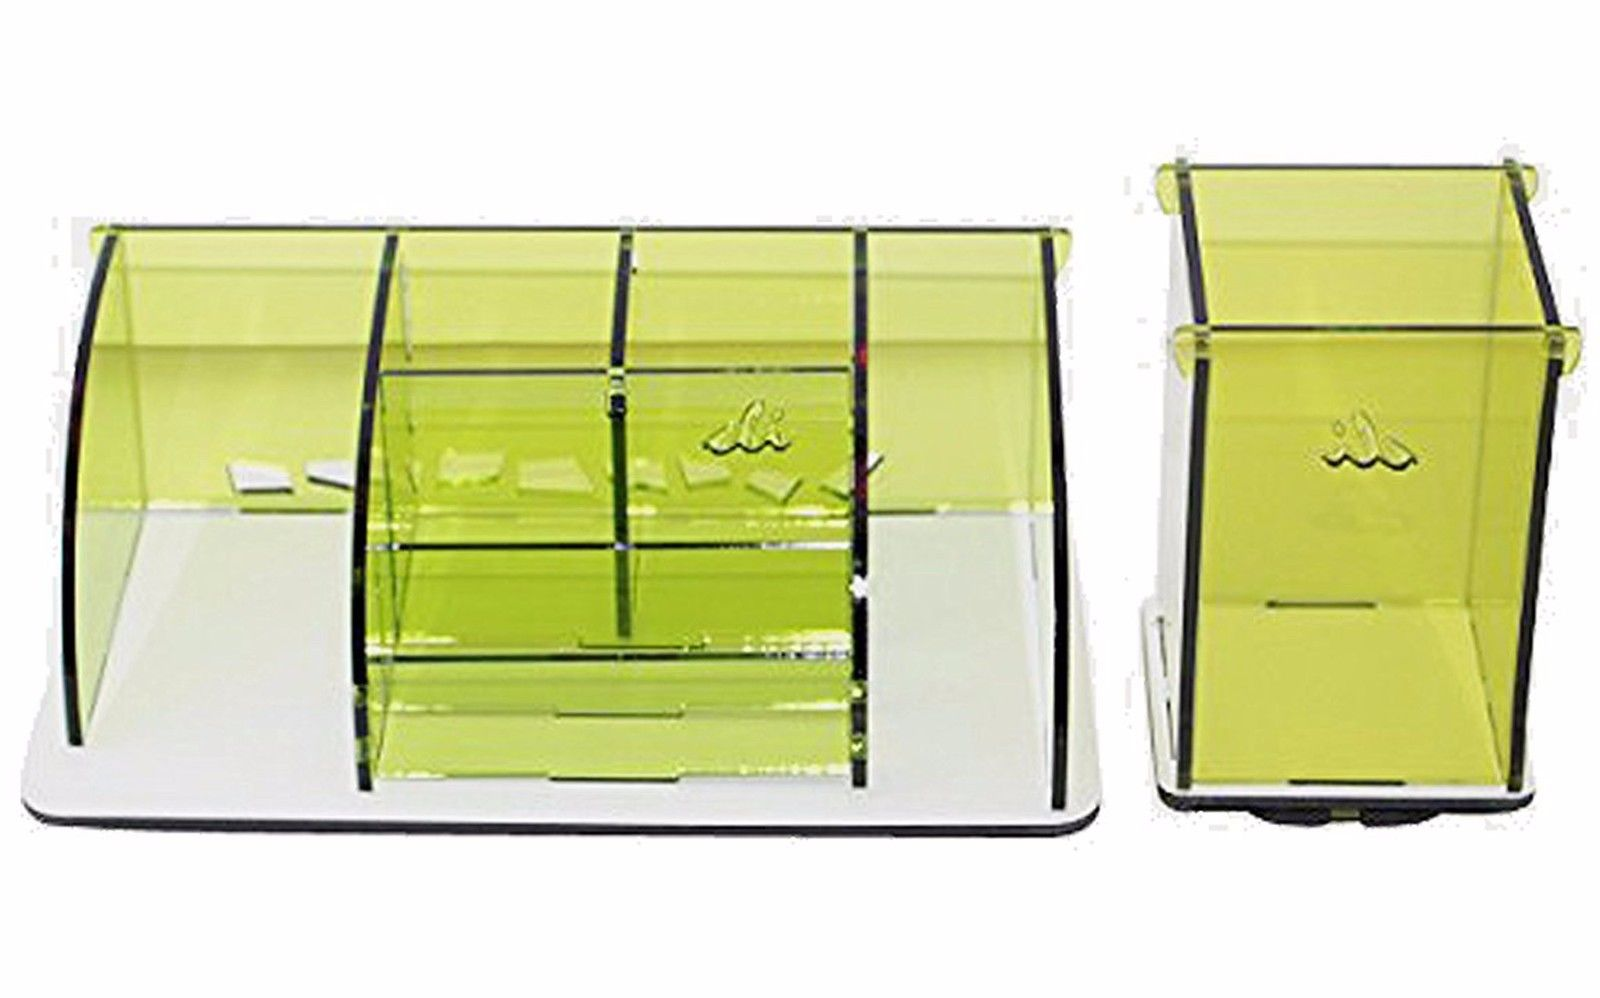 Stationary Boxes Set Of 2 Stationery Desk Supplies Organizer Storage Boxes For Paper Pens Snacks Etc